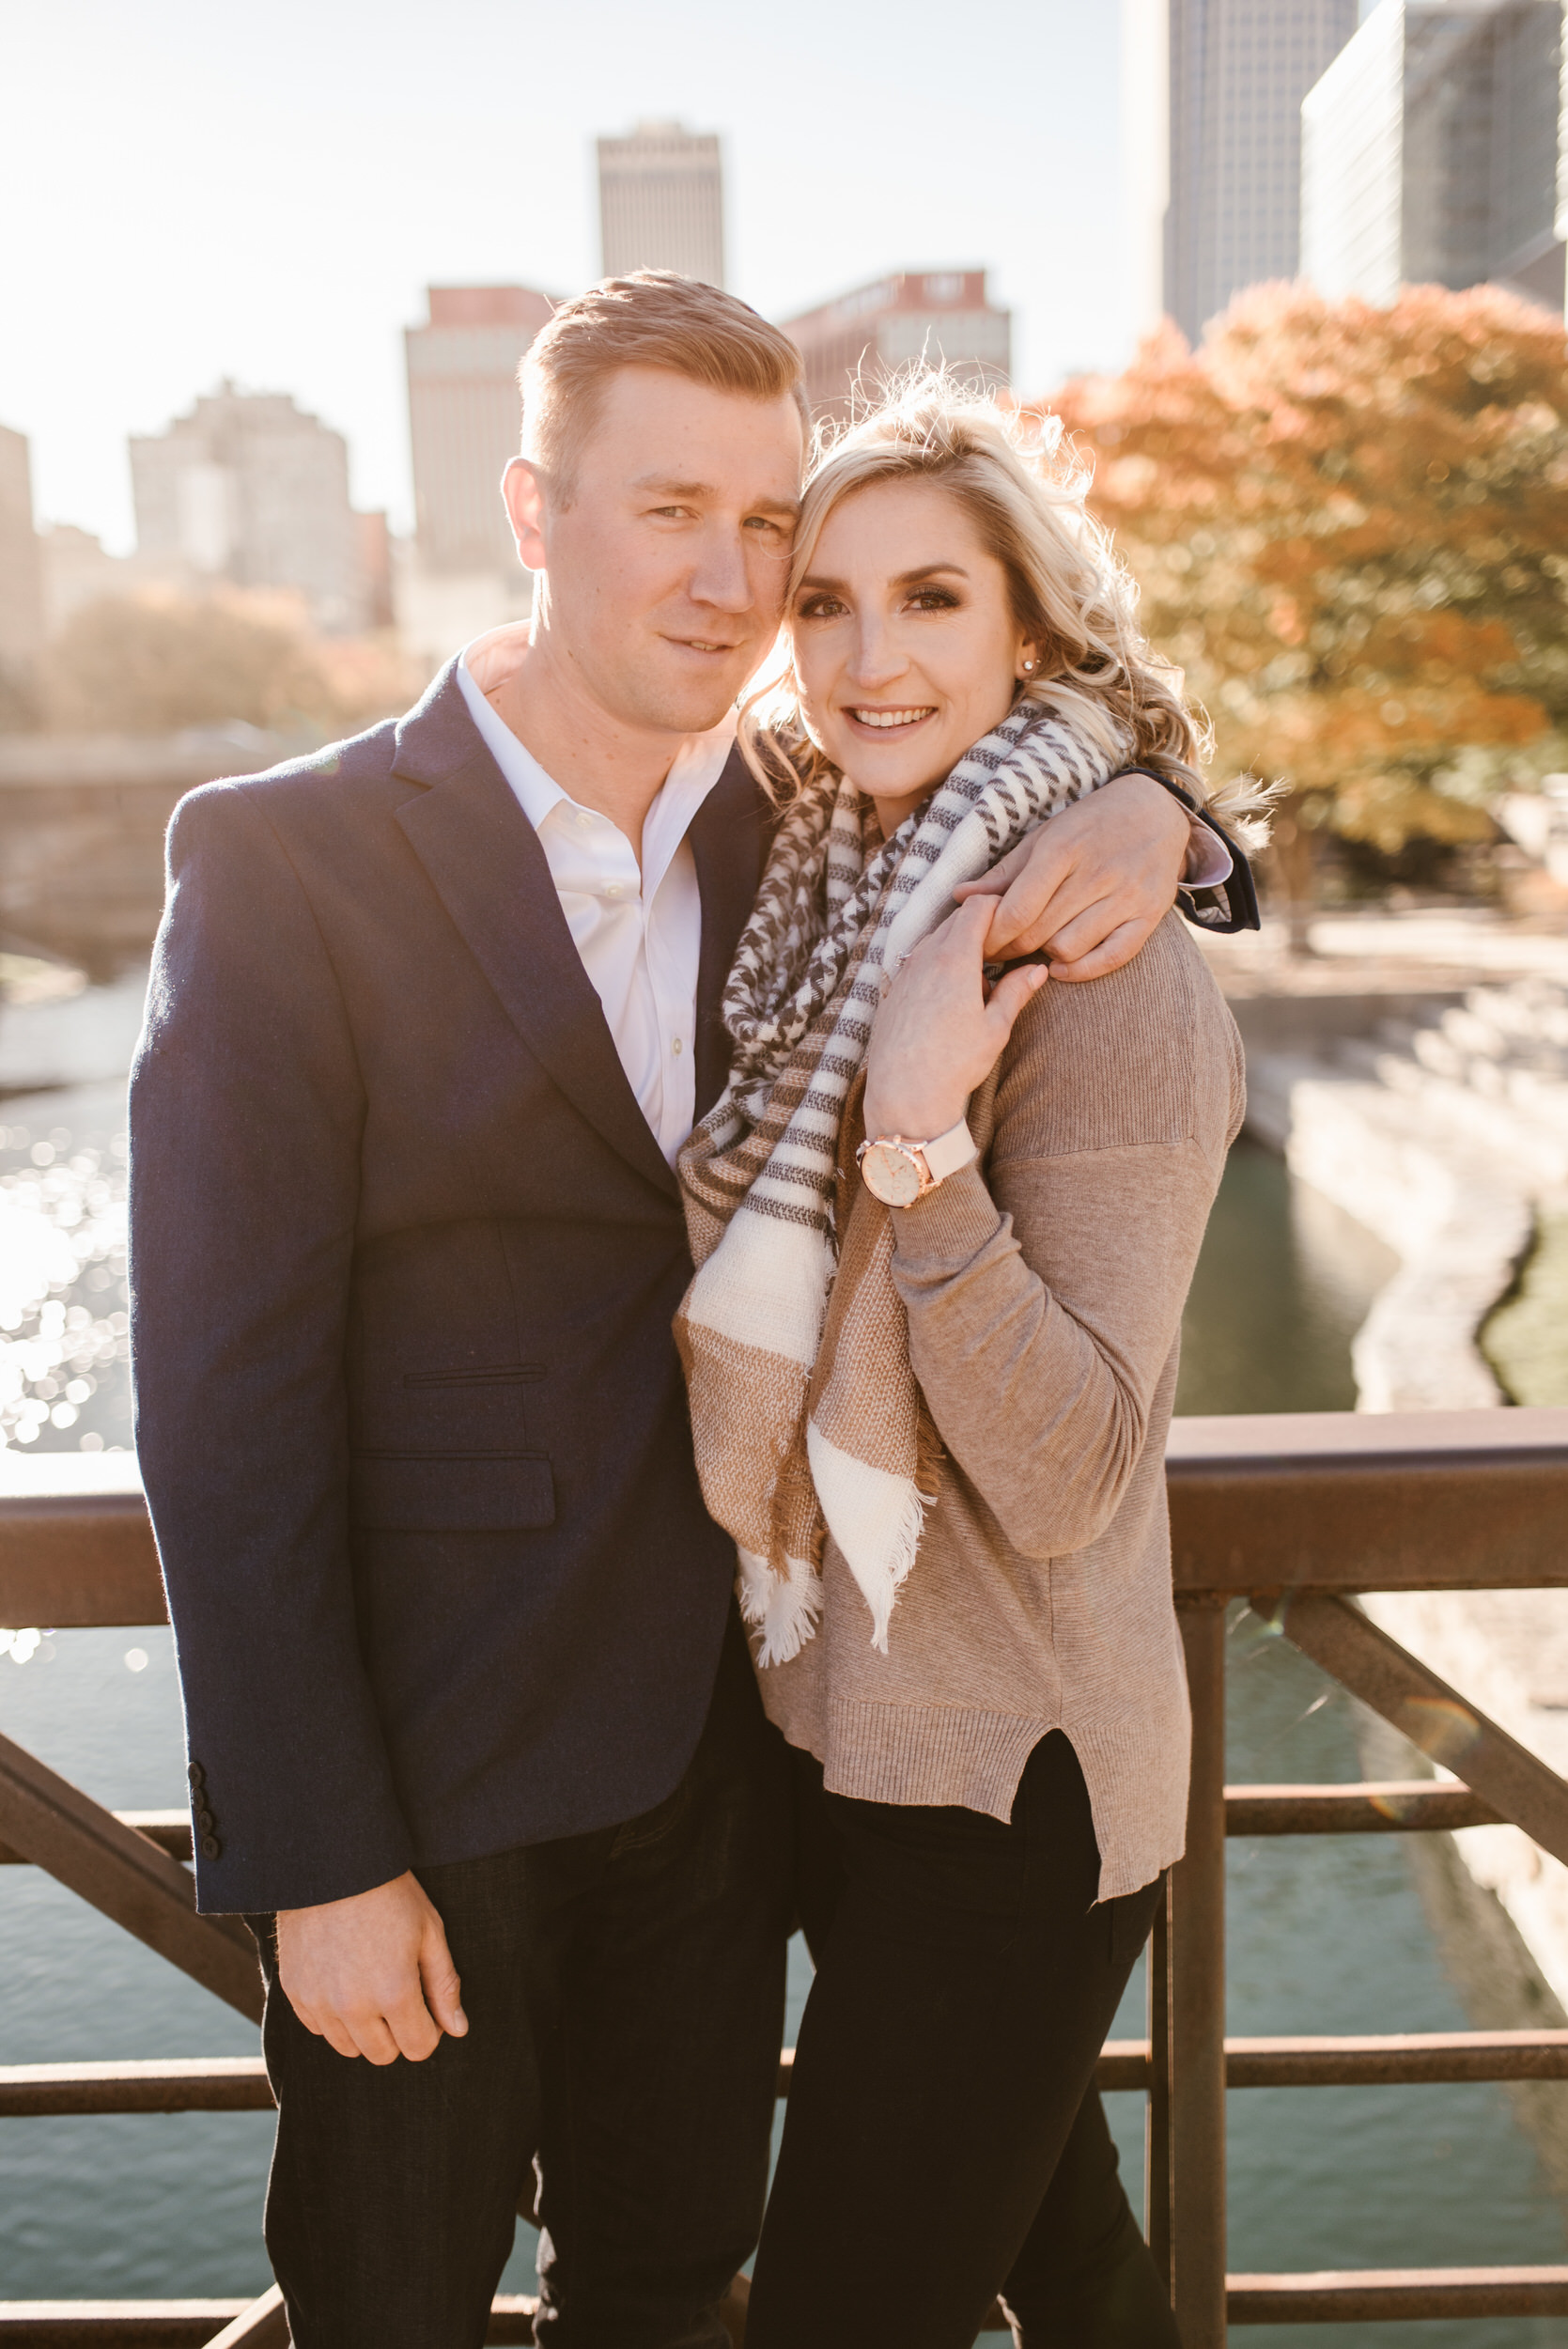 Gene Leahy Mall Omaha Engagement Session Kaylie Sirek Photography 05.jpg